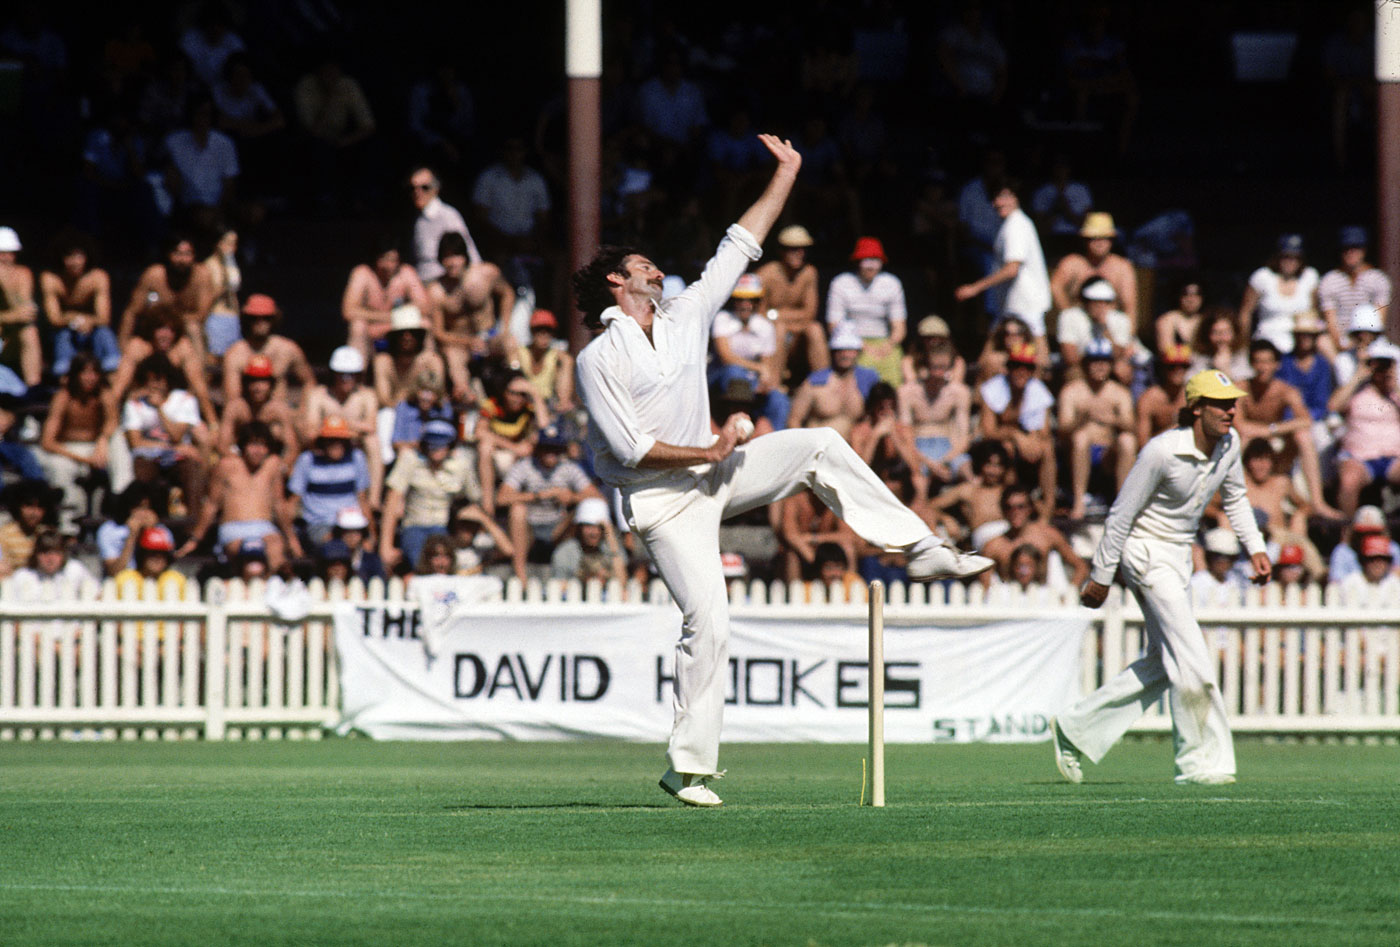 Lillee had pace and smarts